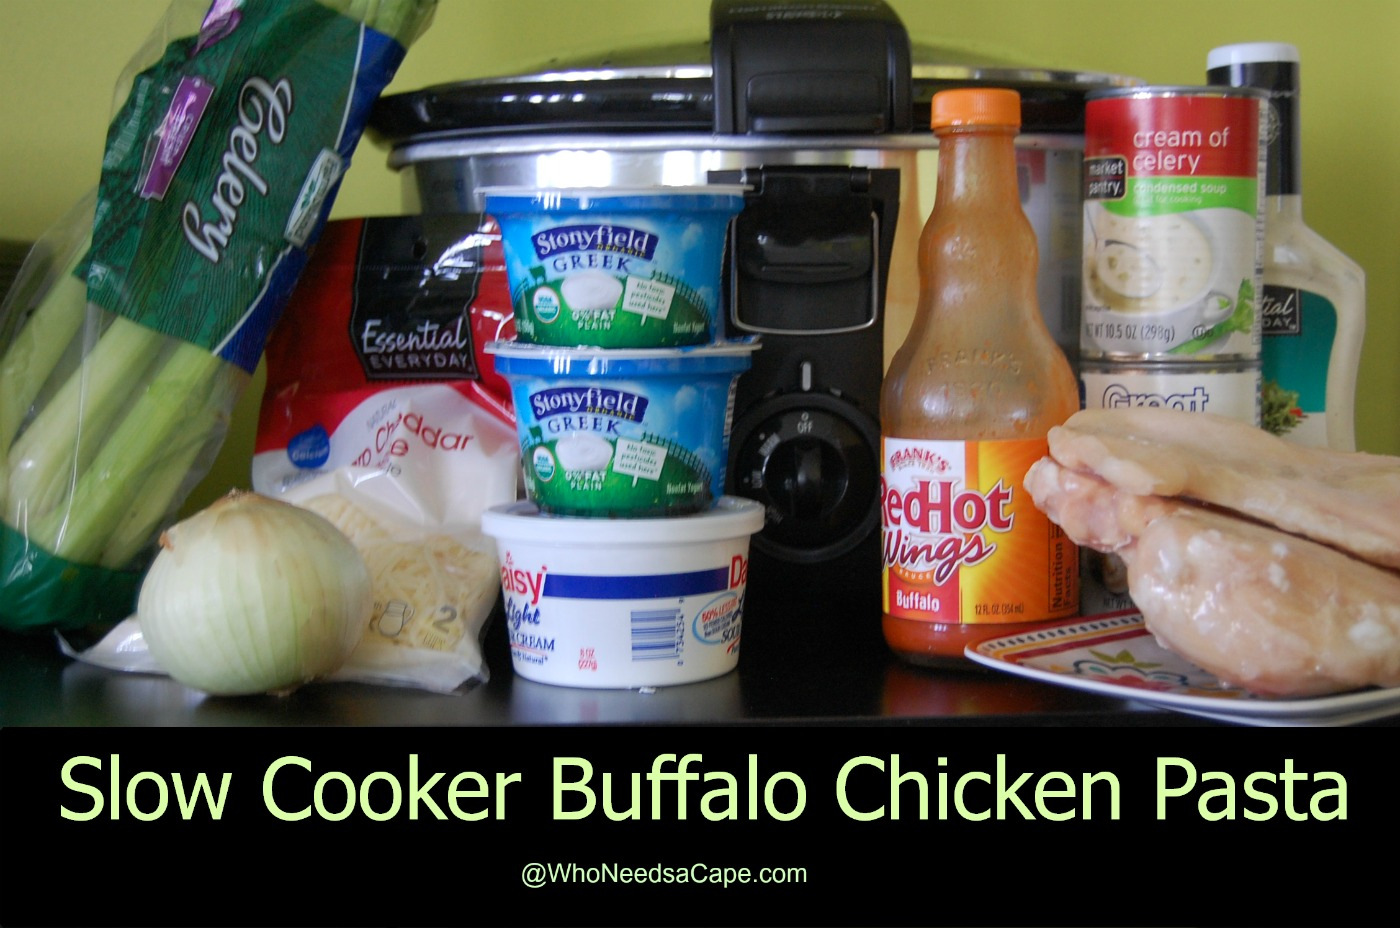 Have Slow Cooker Buffalo Chicken Pasta! It has that great chicken wing flavor with the comfort of a pasta dish with the ease of crockpot cooking!